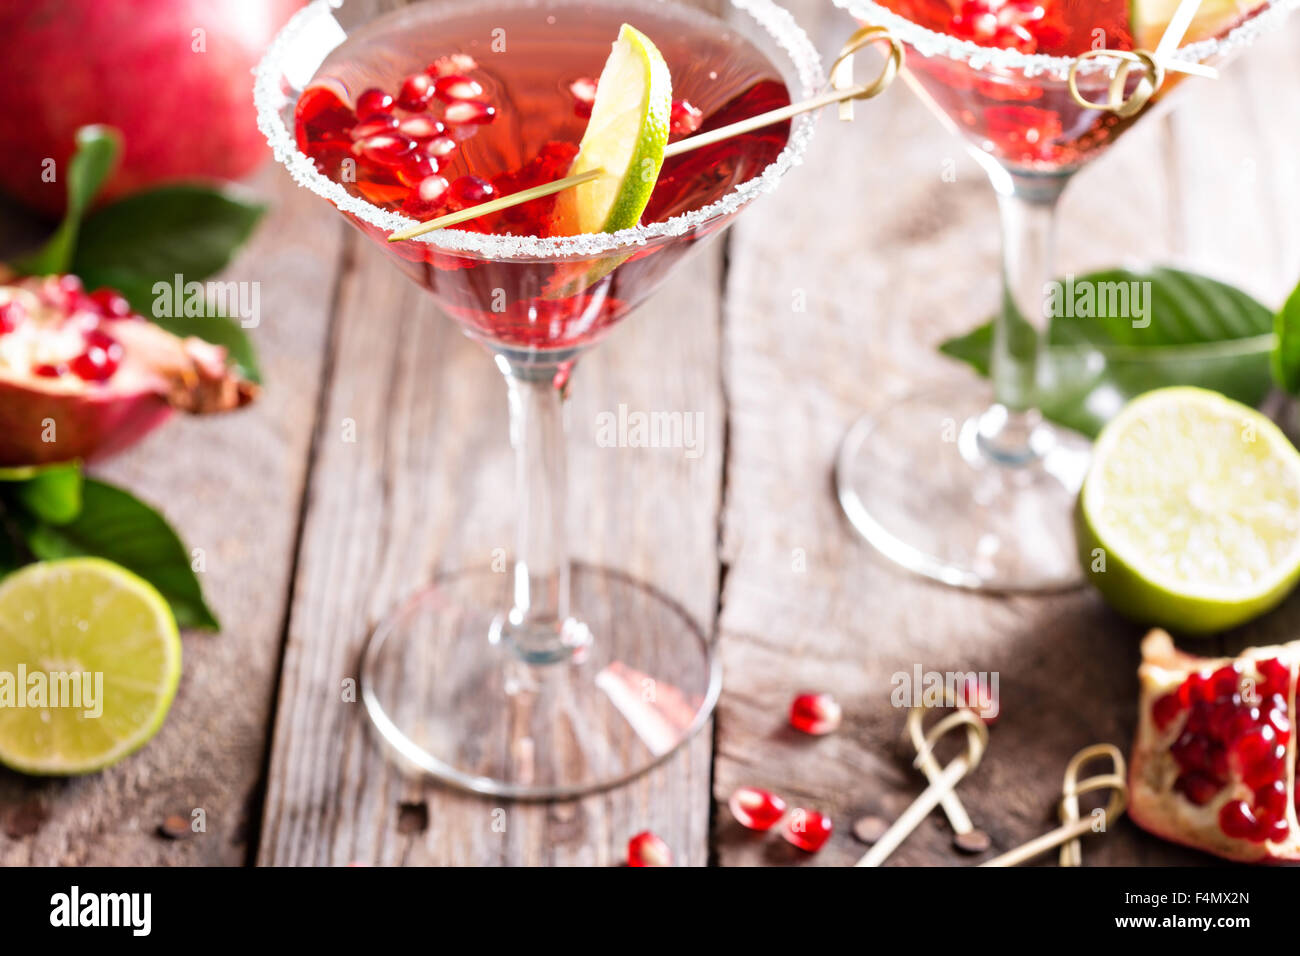 Pomegranate martini with slices of lime and pomegranate seeds - Stock Image